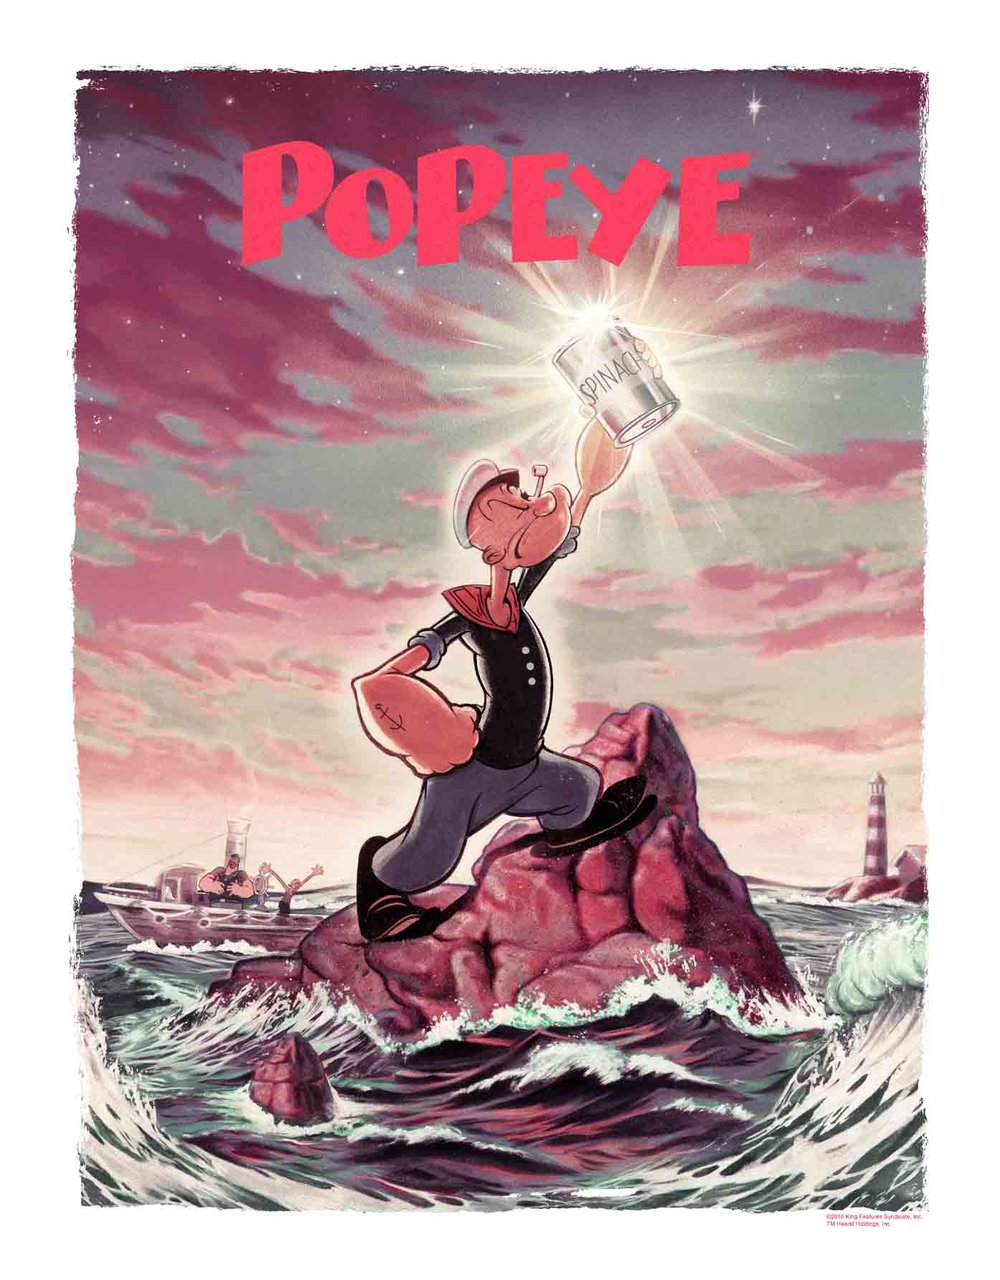 Popeye+Red+John+Keaveney+Bottleneck+Gallery.jpg